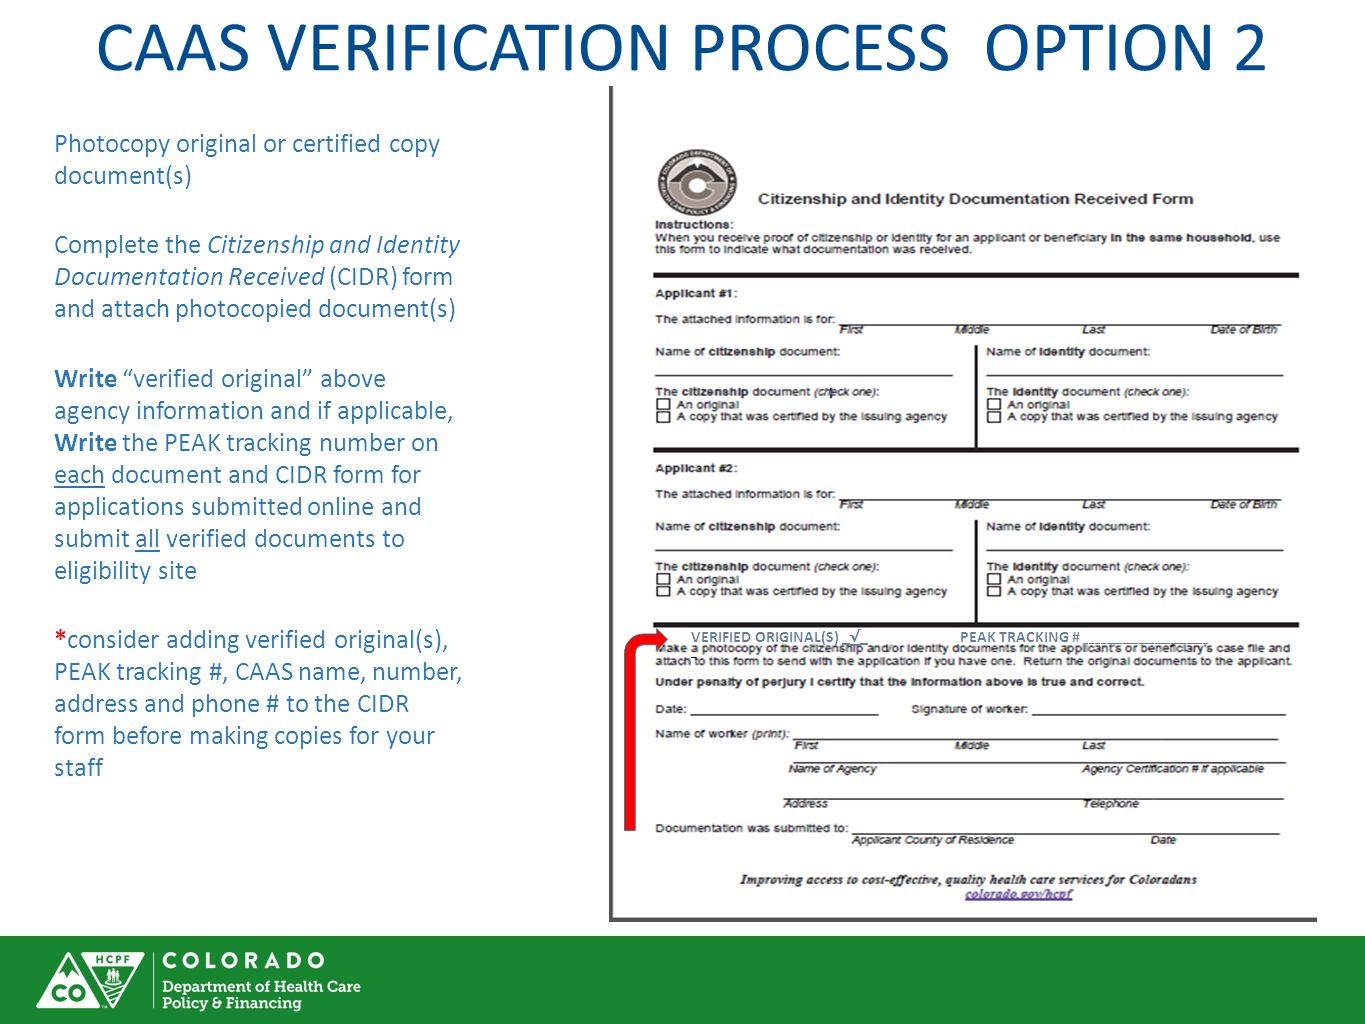 CAAS VERIFICATION PROCESS OPTION 2 Photocopy original or certified copy document(s) Complete the Citizenship and Identity Documentation Received (CIDR) form and attach photocopied document(s) Write verified original above agency information and if applicable, Write the PEAK tracking number on each document and CIDR form for applications submitted online and submit all verified documents to eligibility site *consider adding verified original(s), PEAK tracking #, CAAS name, number, address and phone # to the CIDR form before making copies for your staff VERIFIED ORIGINAL(S) _ √ _ PEAK TRACKING # _______________________ _